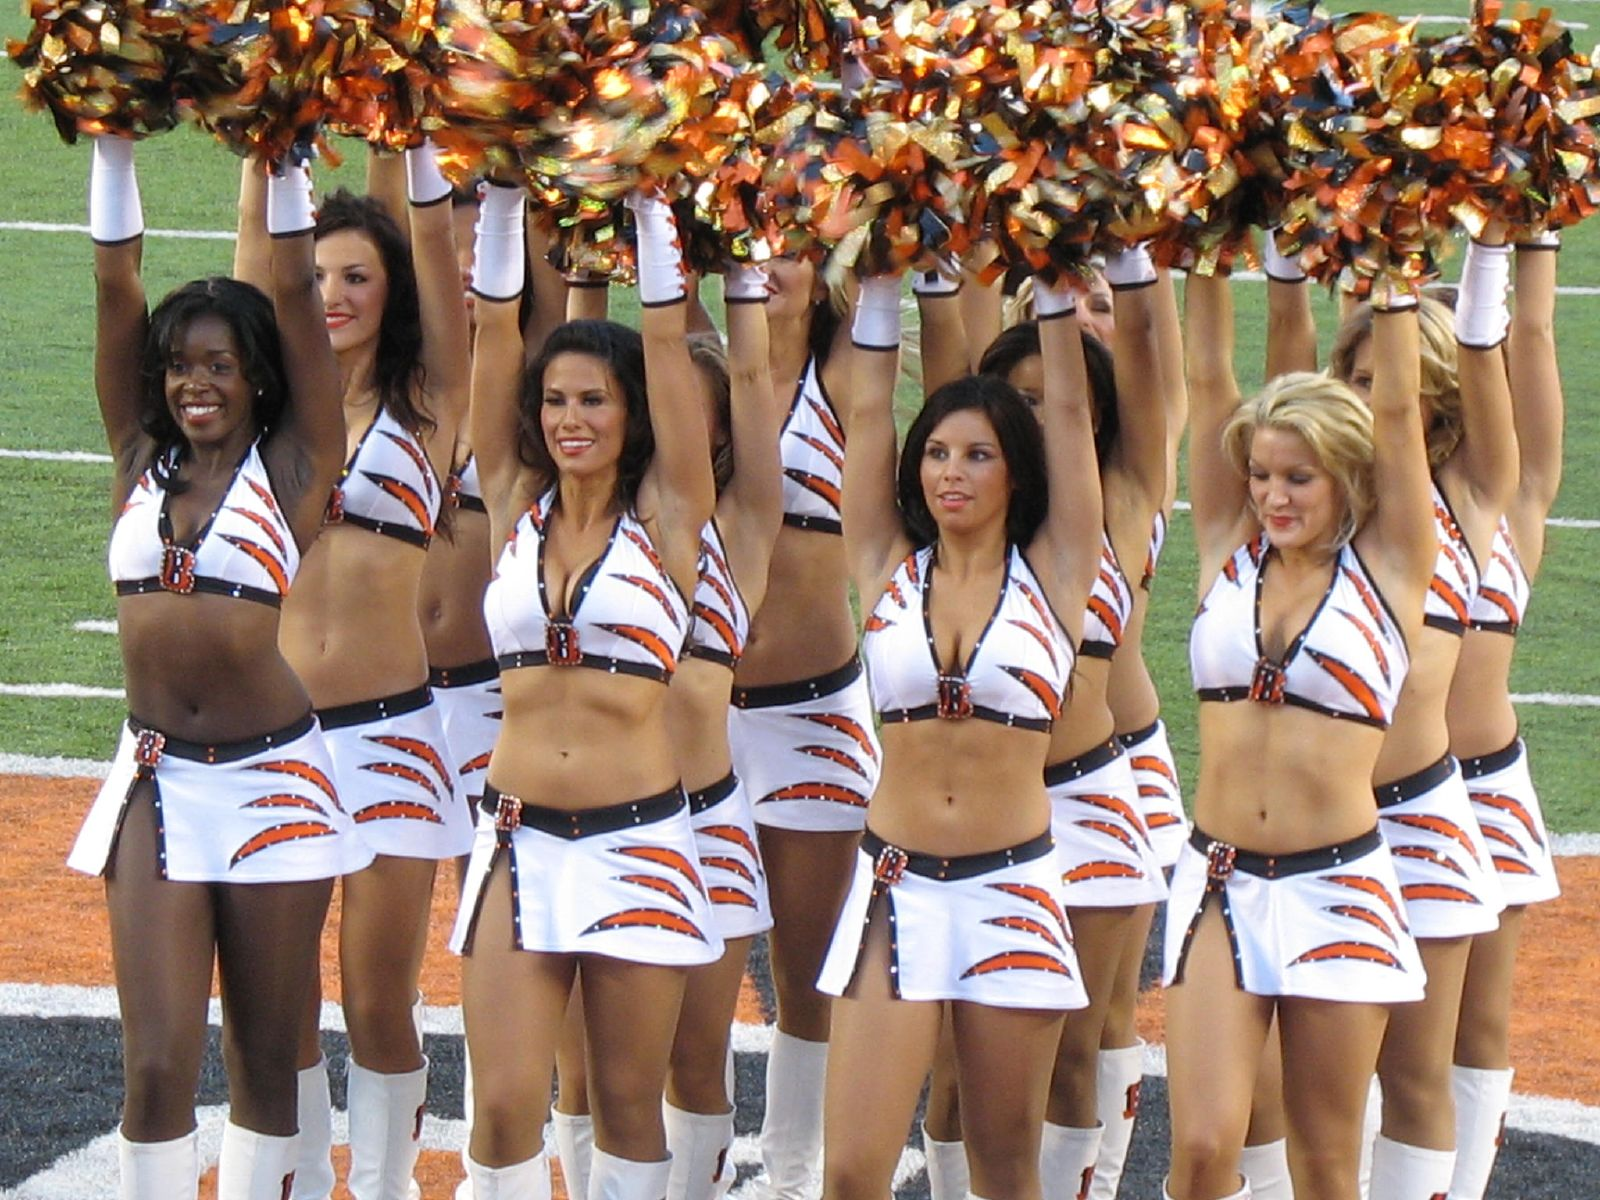 Description Cincinnati Bengals cheerleaders.jpg